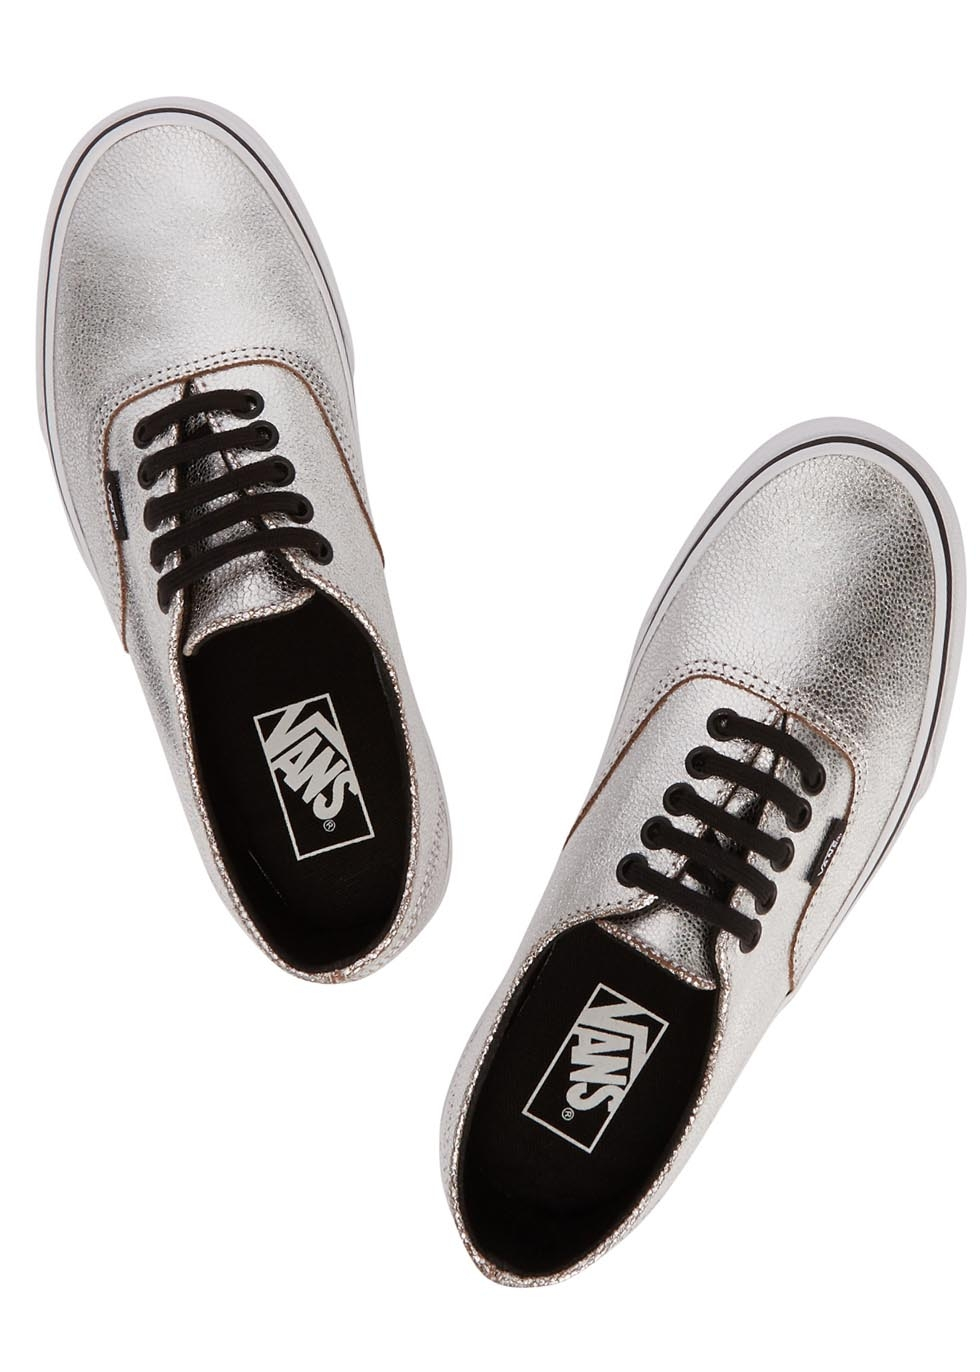 09a53648a8 Vans Authentic Decon Silver Leather Trainers in Metallic - Lyst